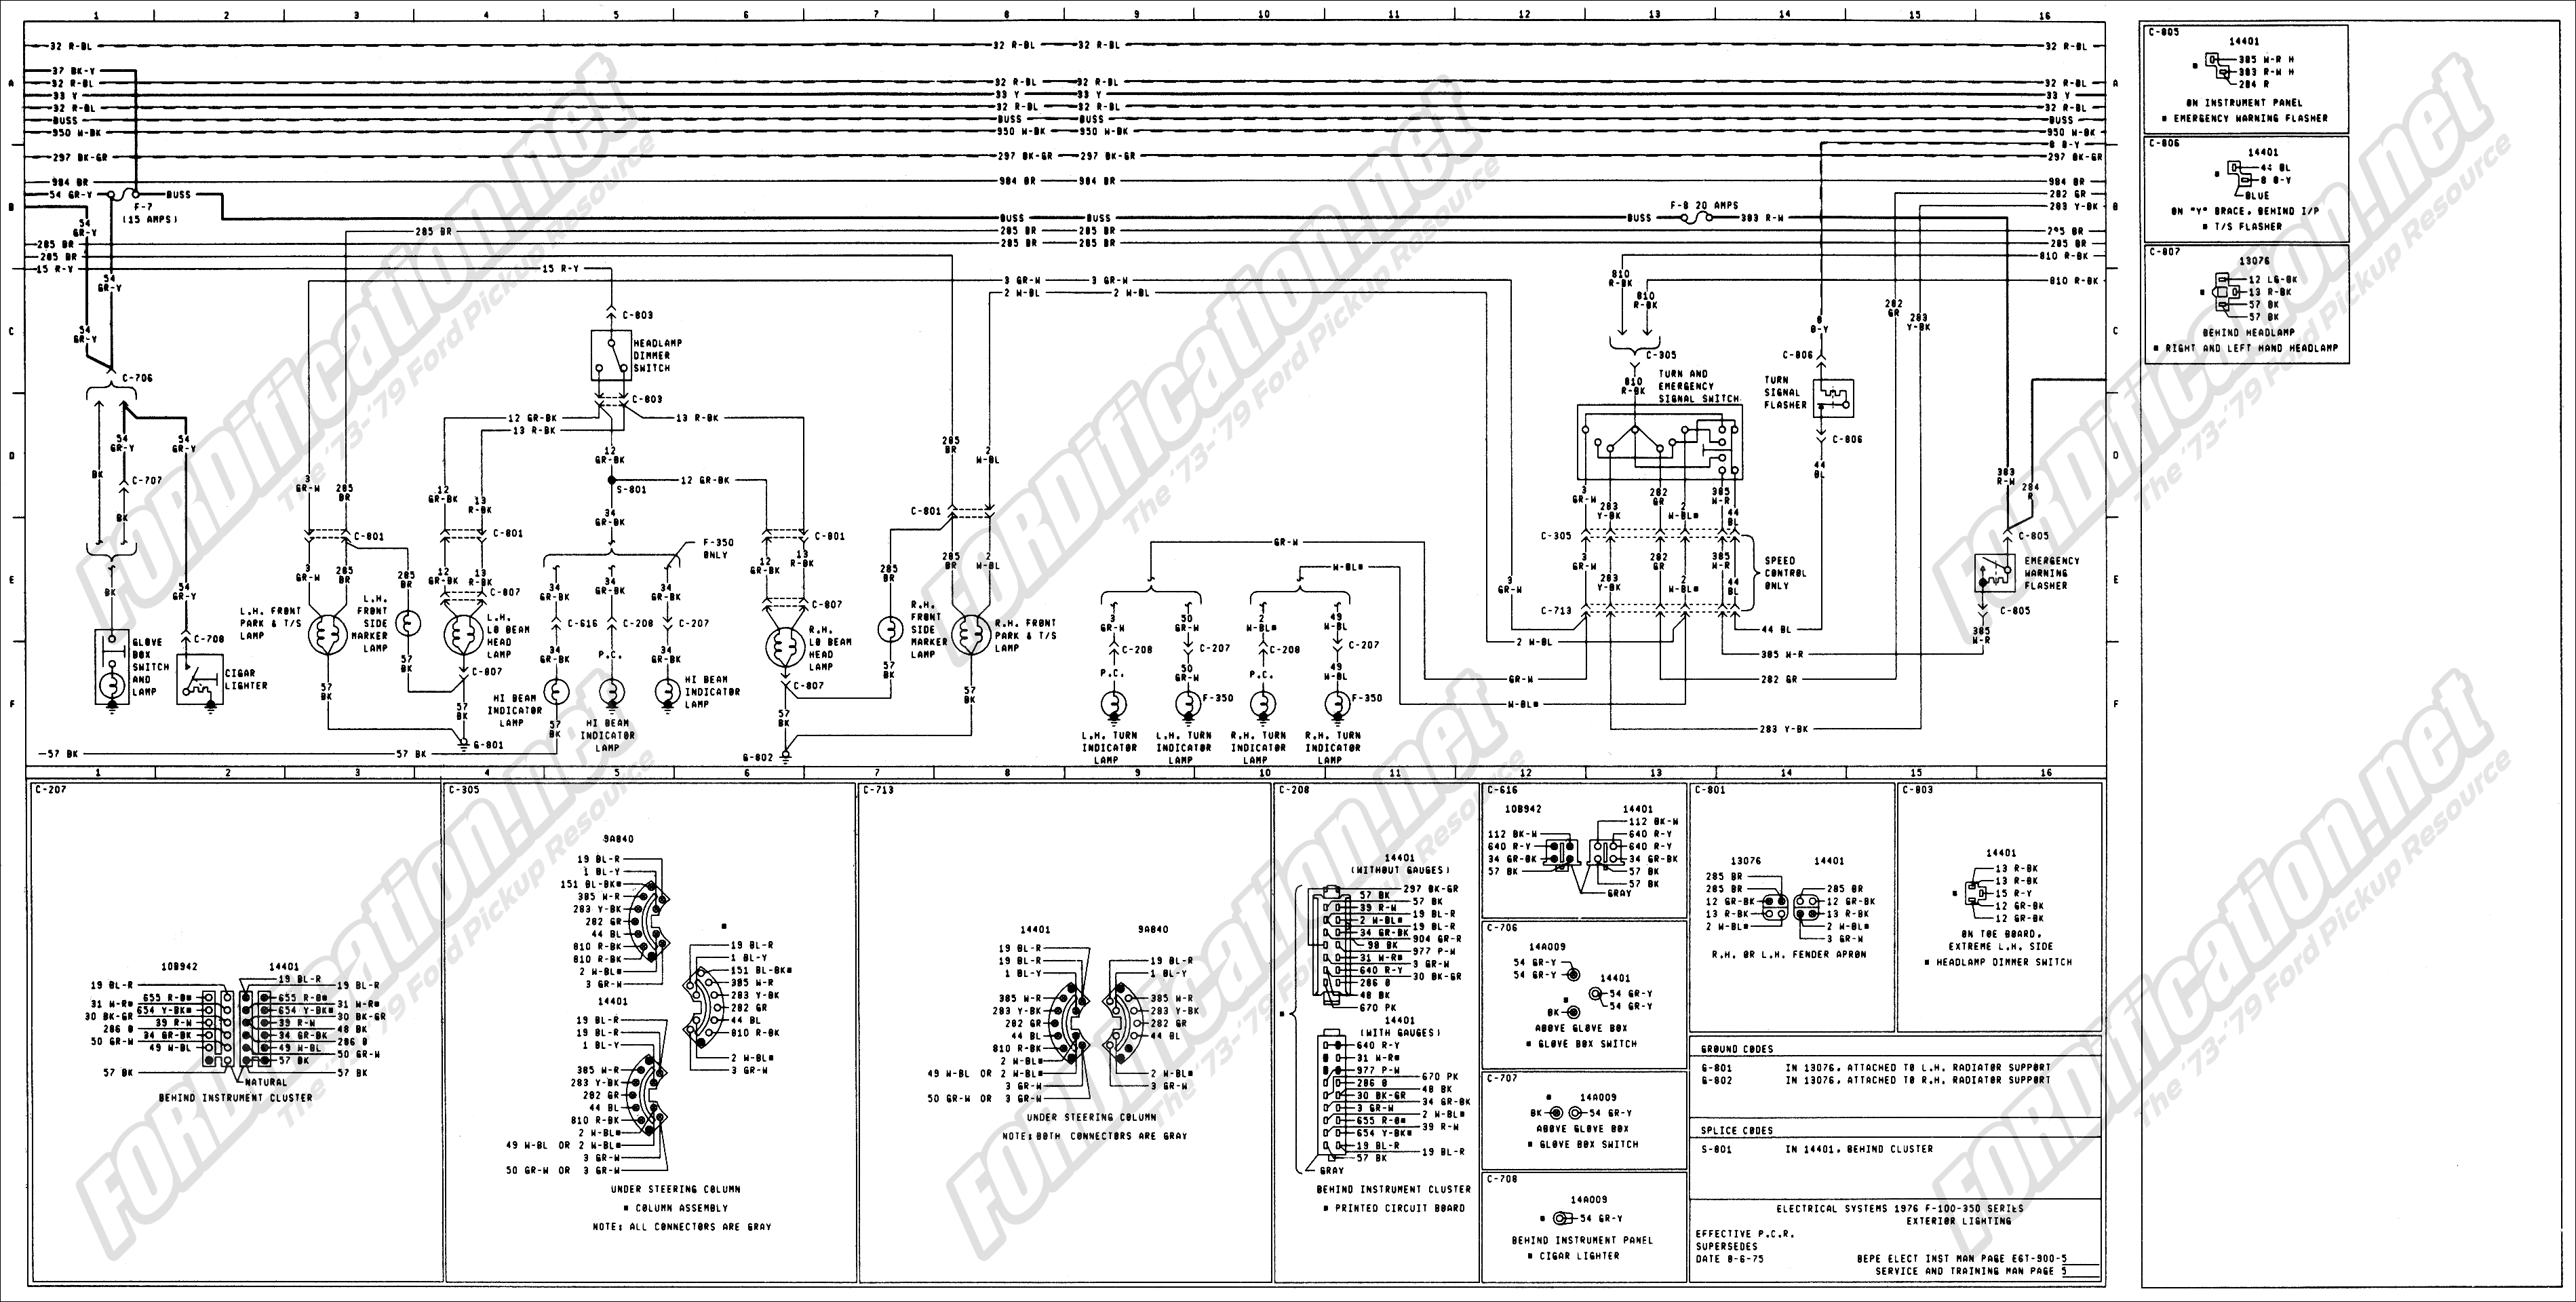 wiring_76master_5of9 1983 ford f100 wiring diagram wiring diagram simonand wiring diagram mirrors 2009 ford f150 truck at soozxer.org